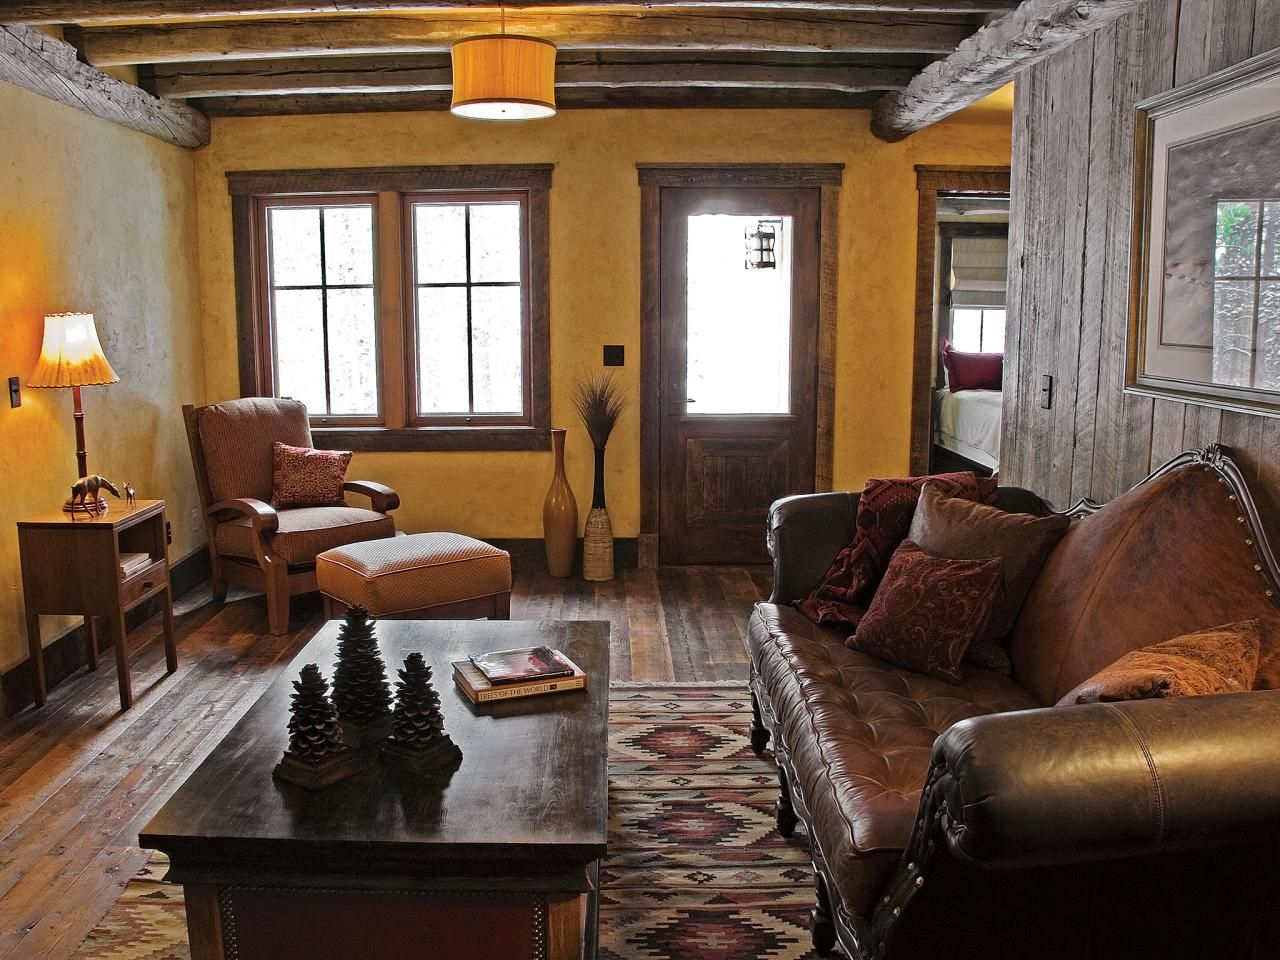 Southwest decor living room  The rustic sitting room in this cabinus guest wing contains a